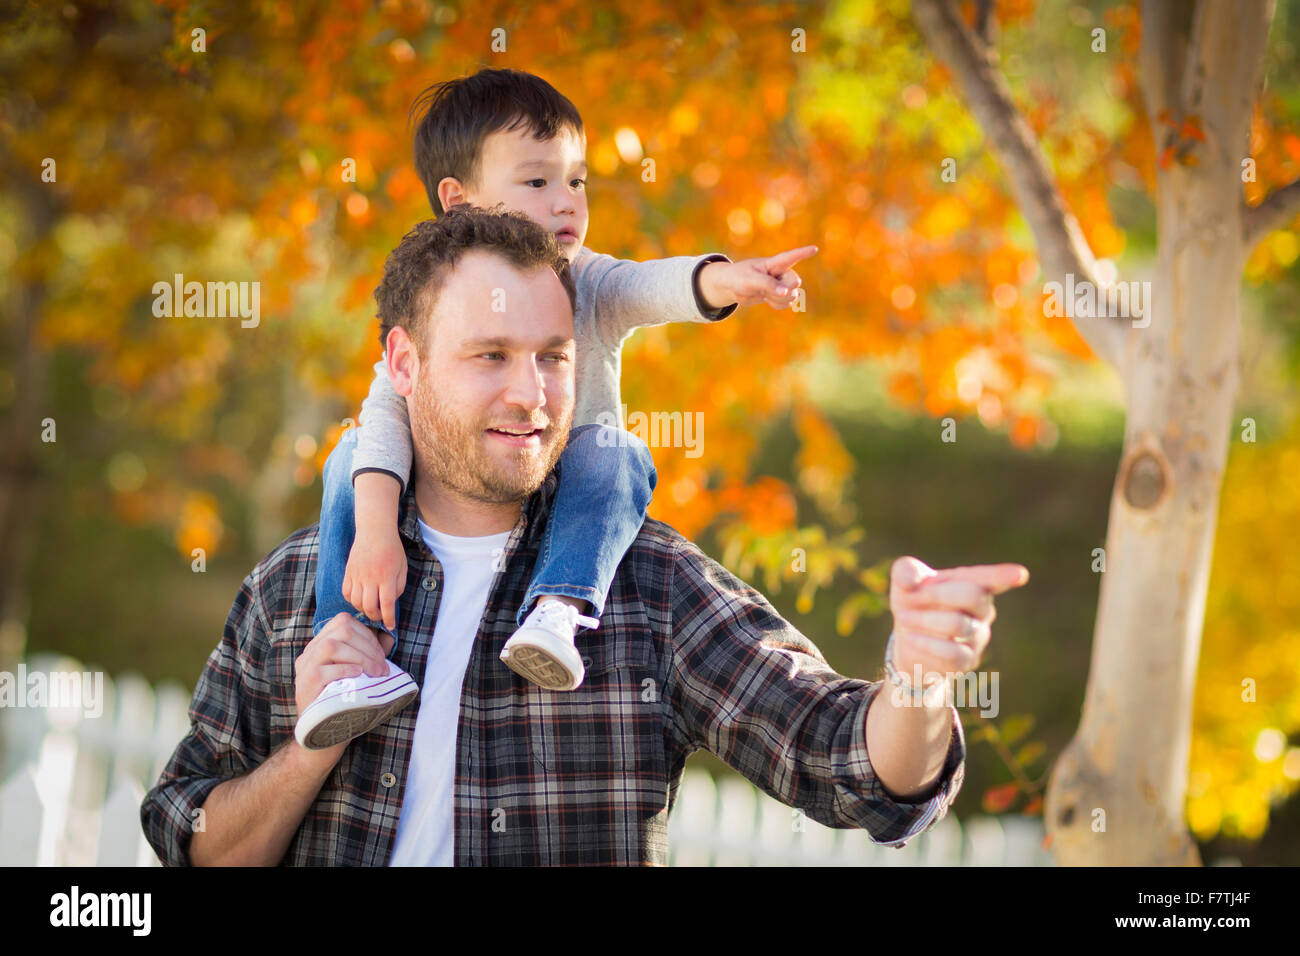 Happy Mixed Race Boy Riding Piggyback and Pointing on Shoulders of Caucasian Father. - Stock Image